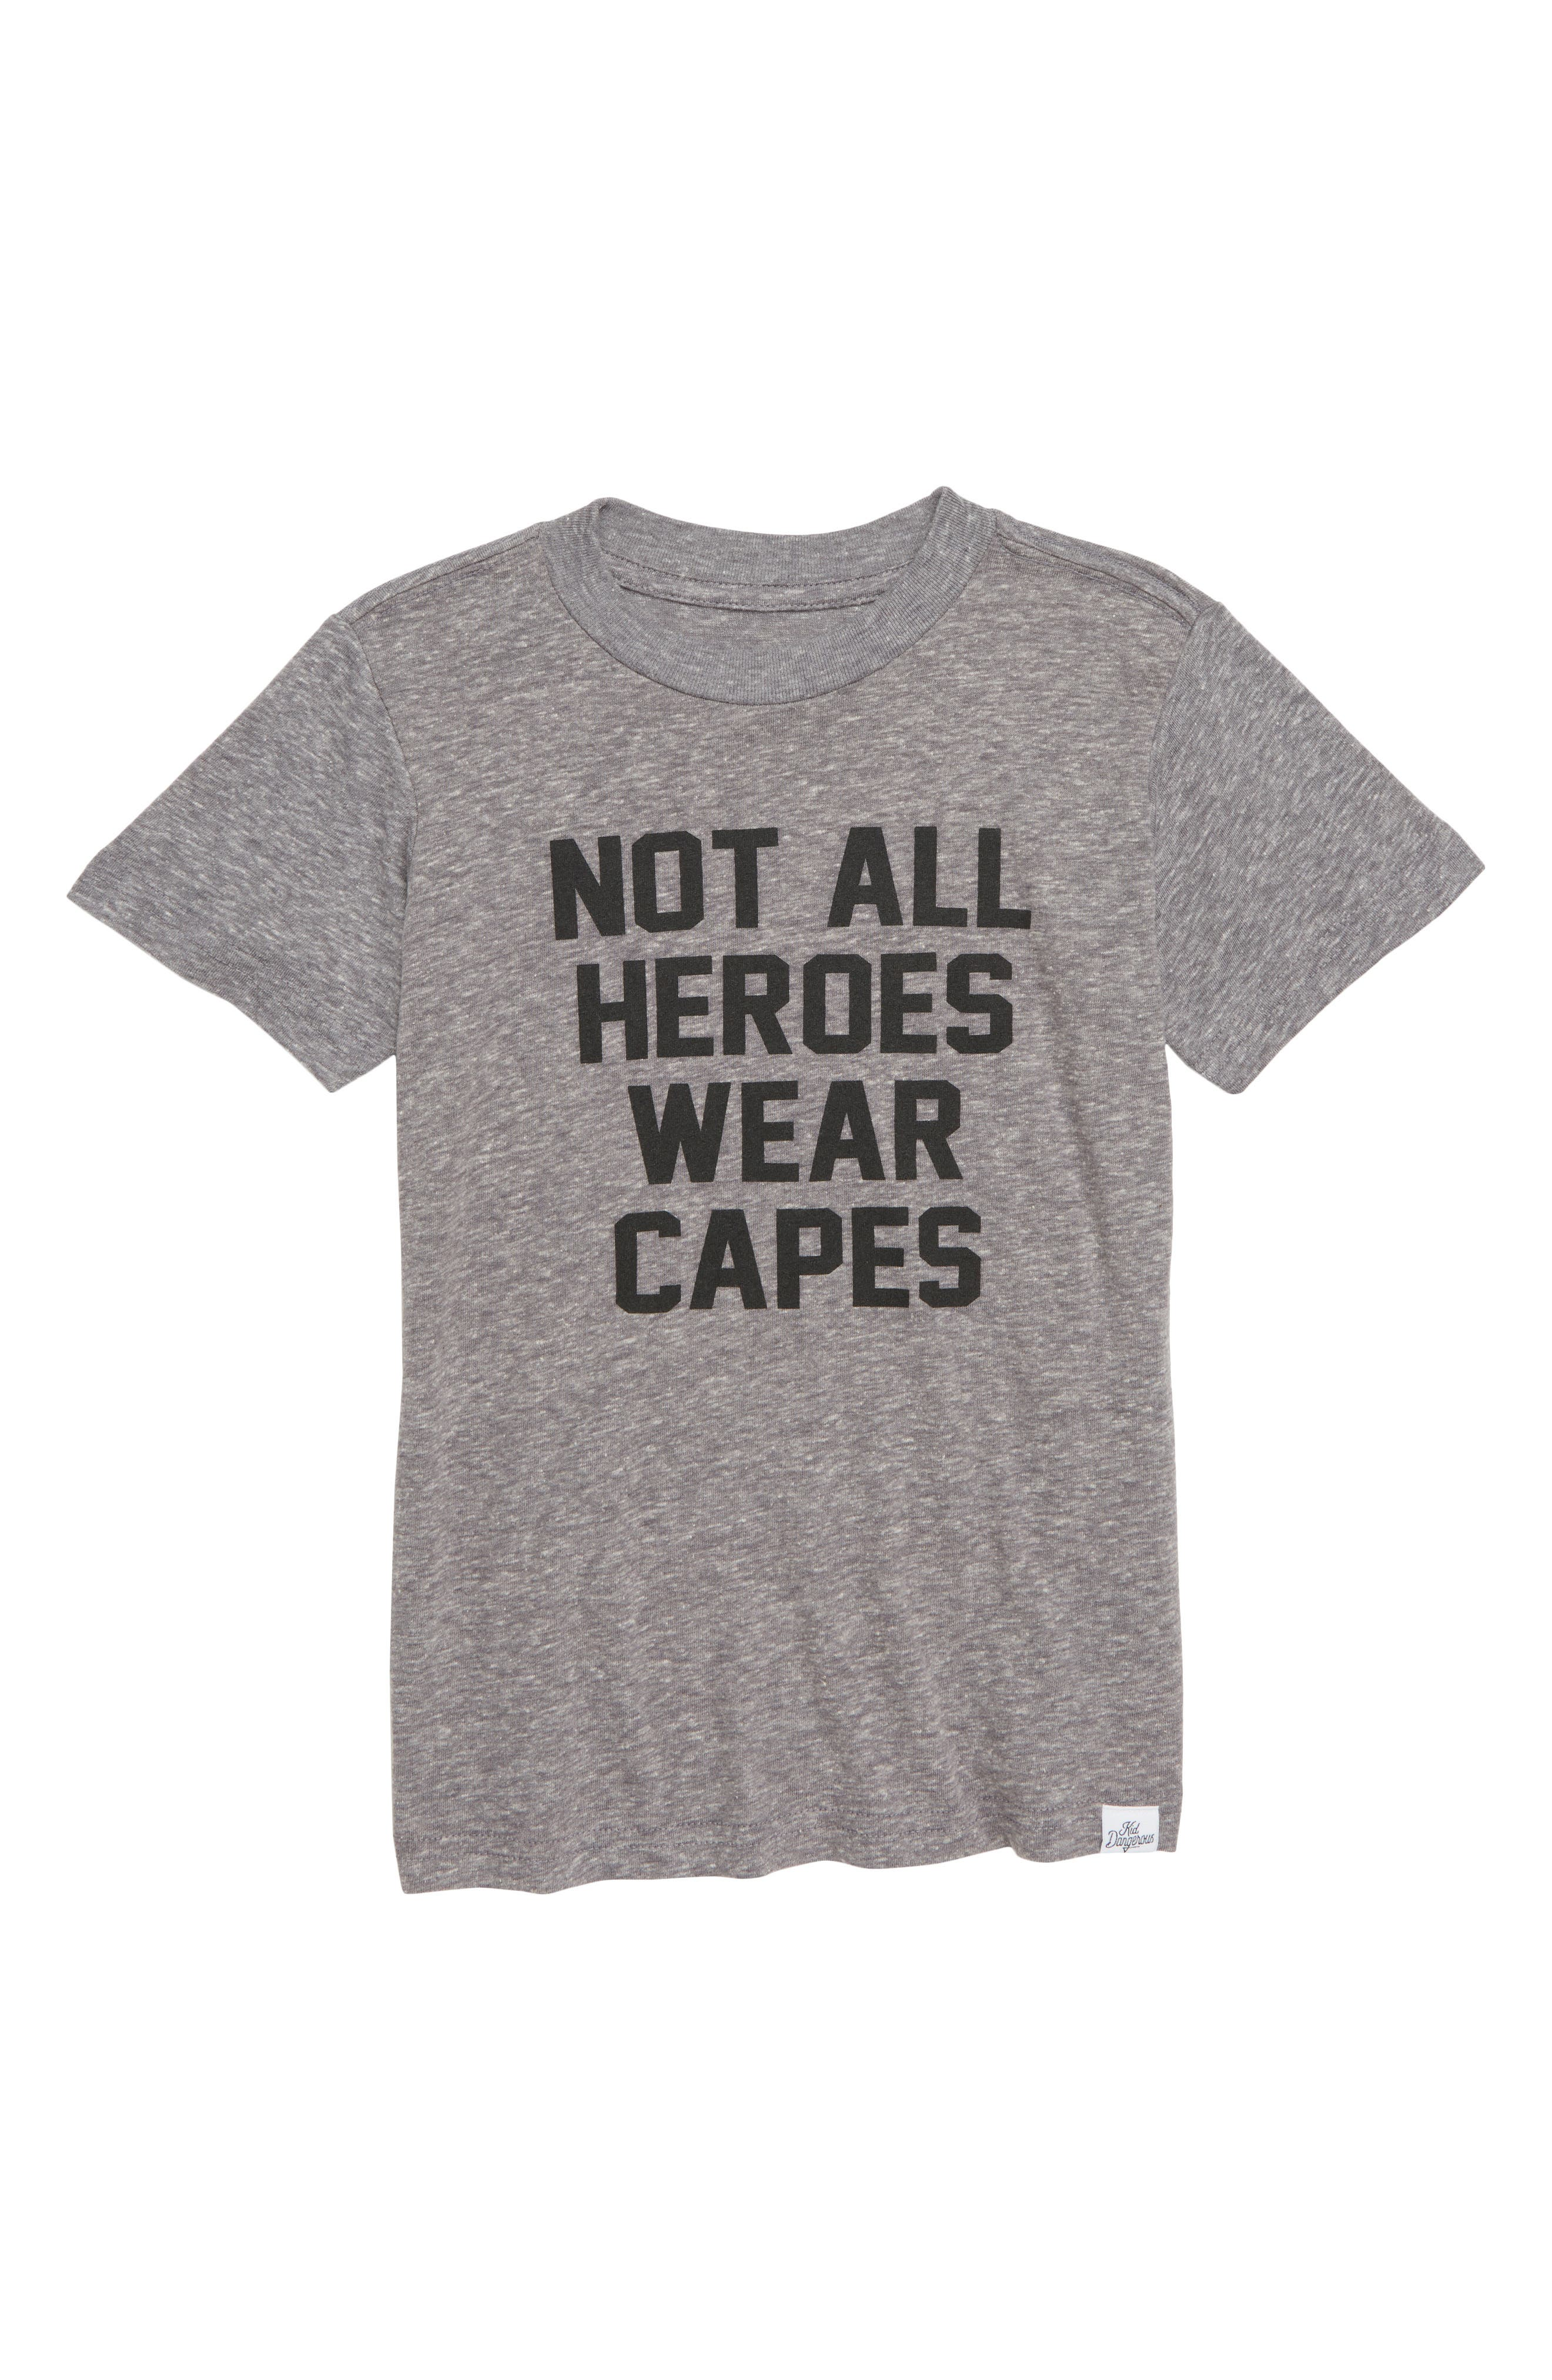 Not All Heroes Wear Capes Graphic T-Shirt,                         Main,                         color, Med Gray